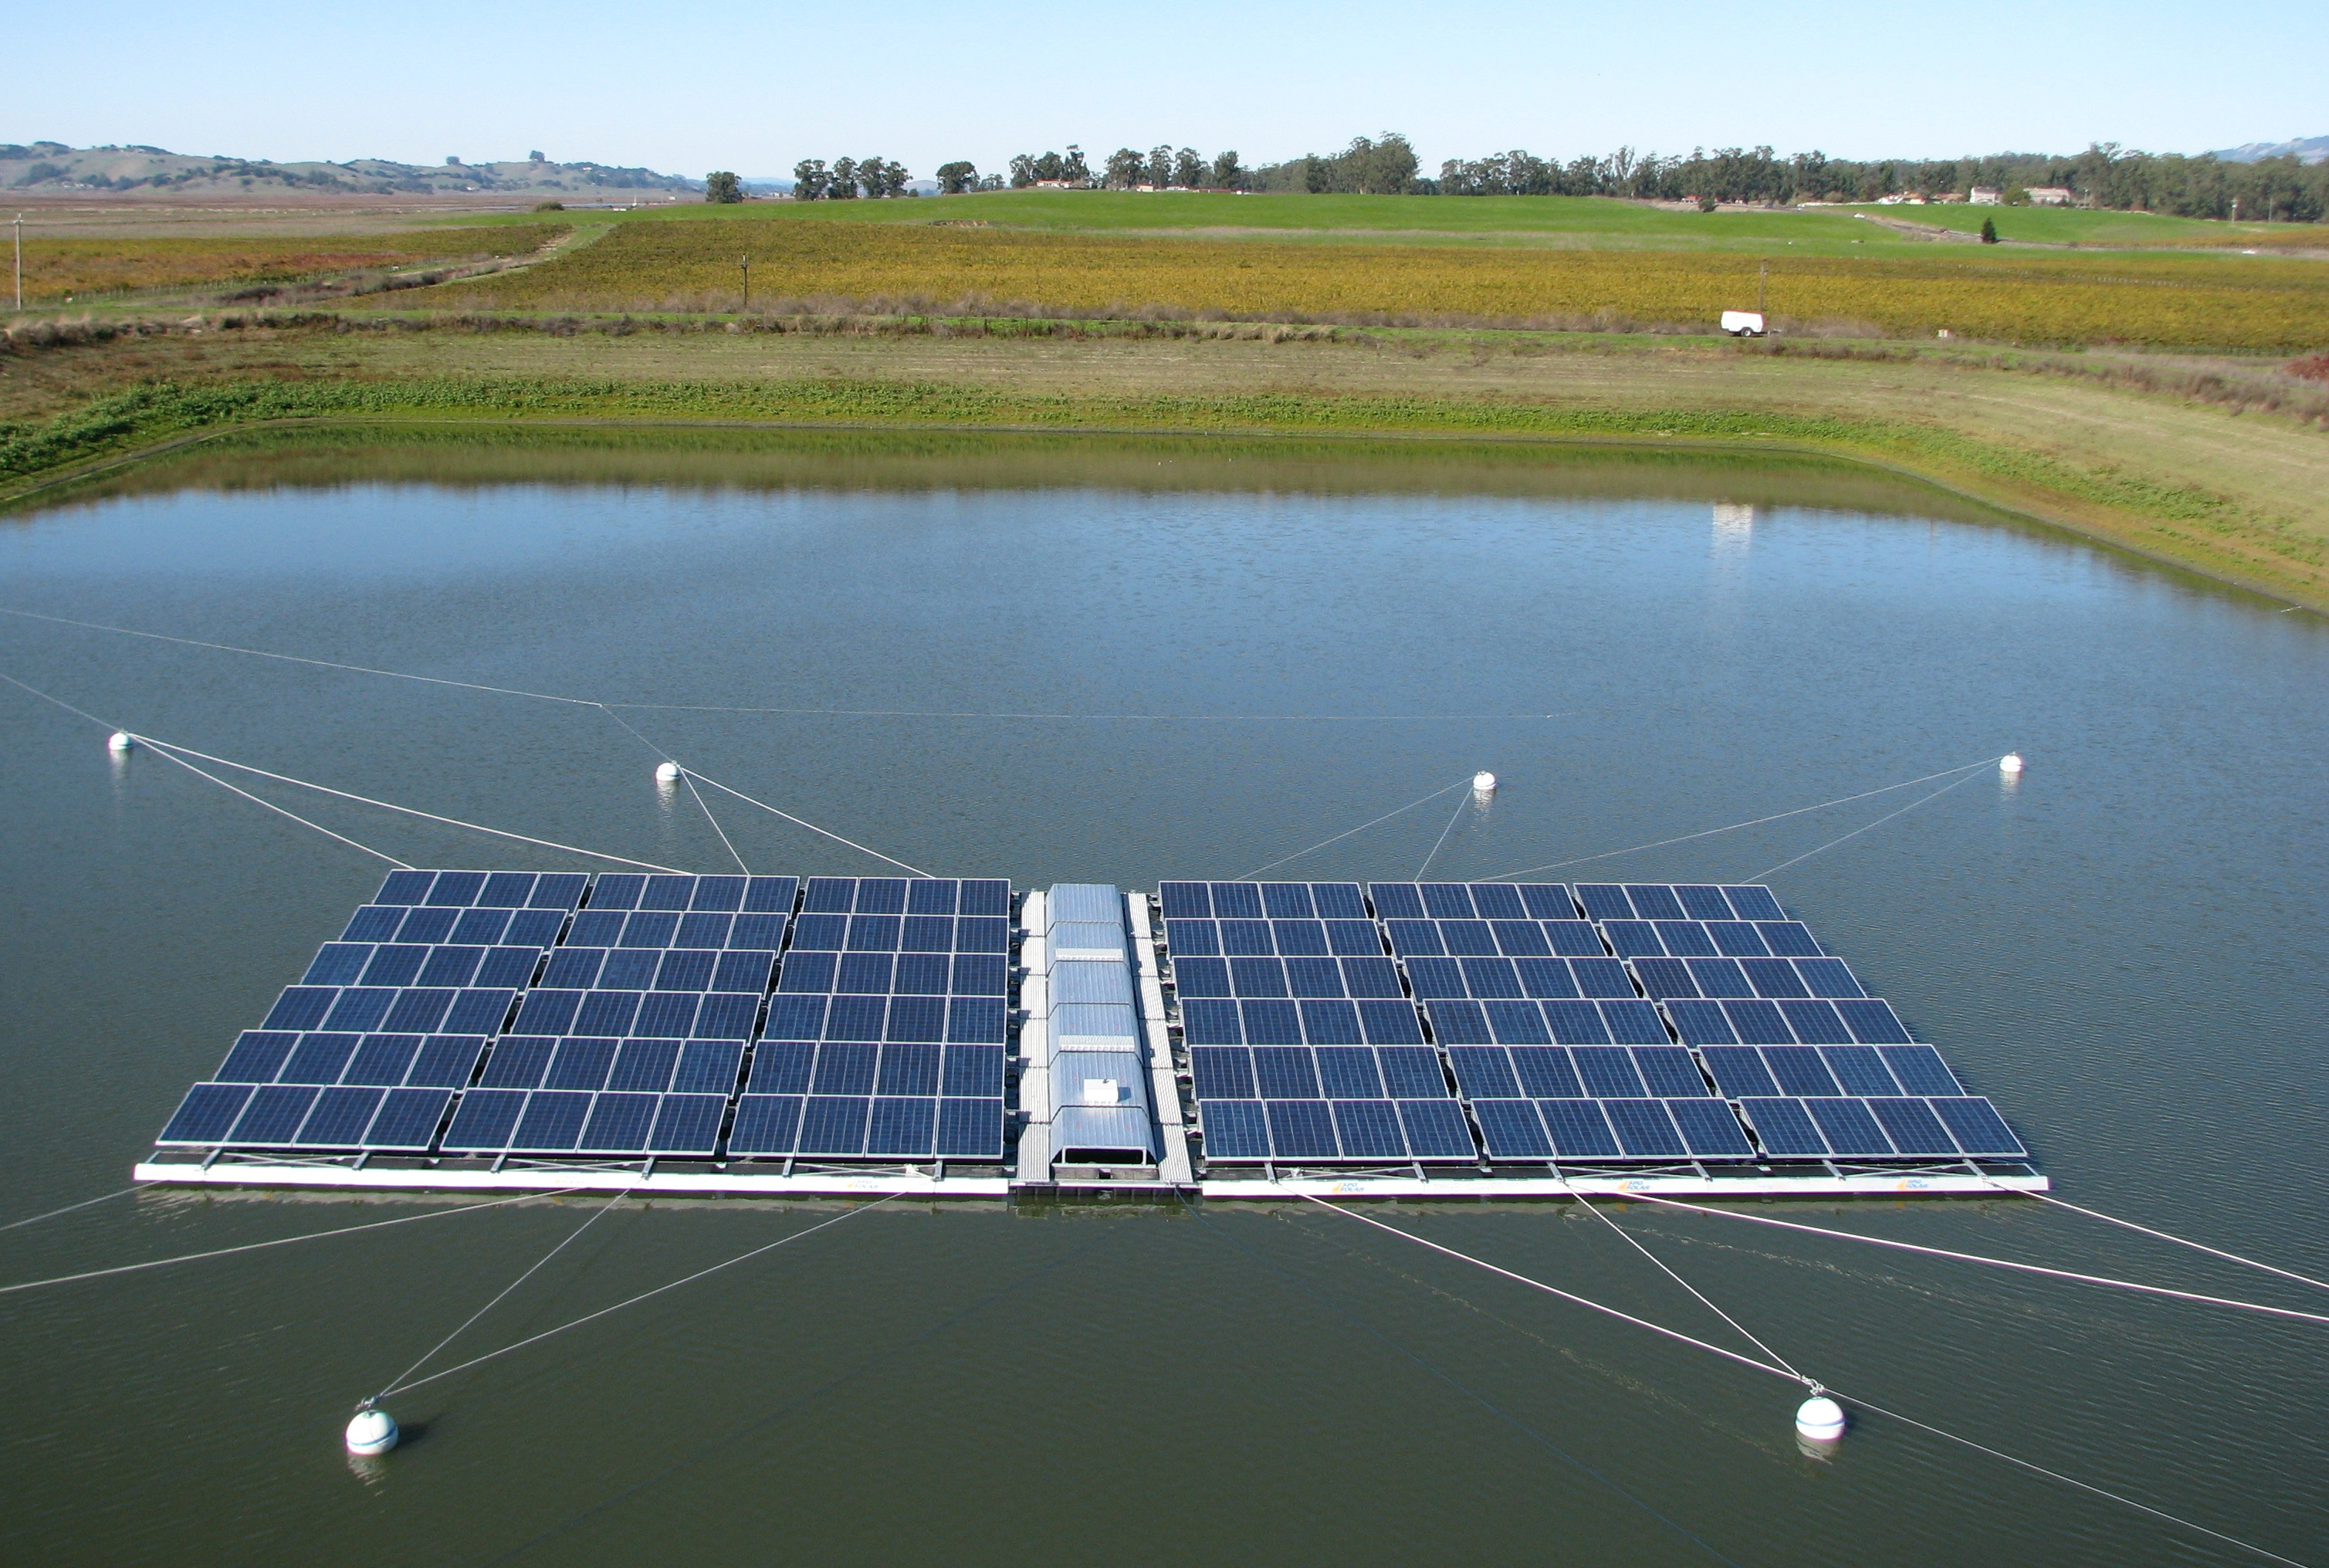 Ntpc Releases New Tender For 20 Mw Floating Solar At Its